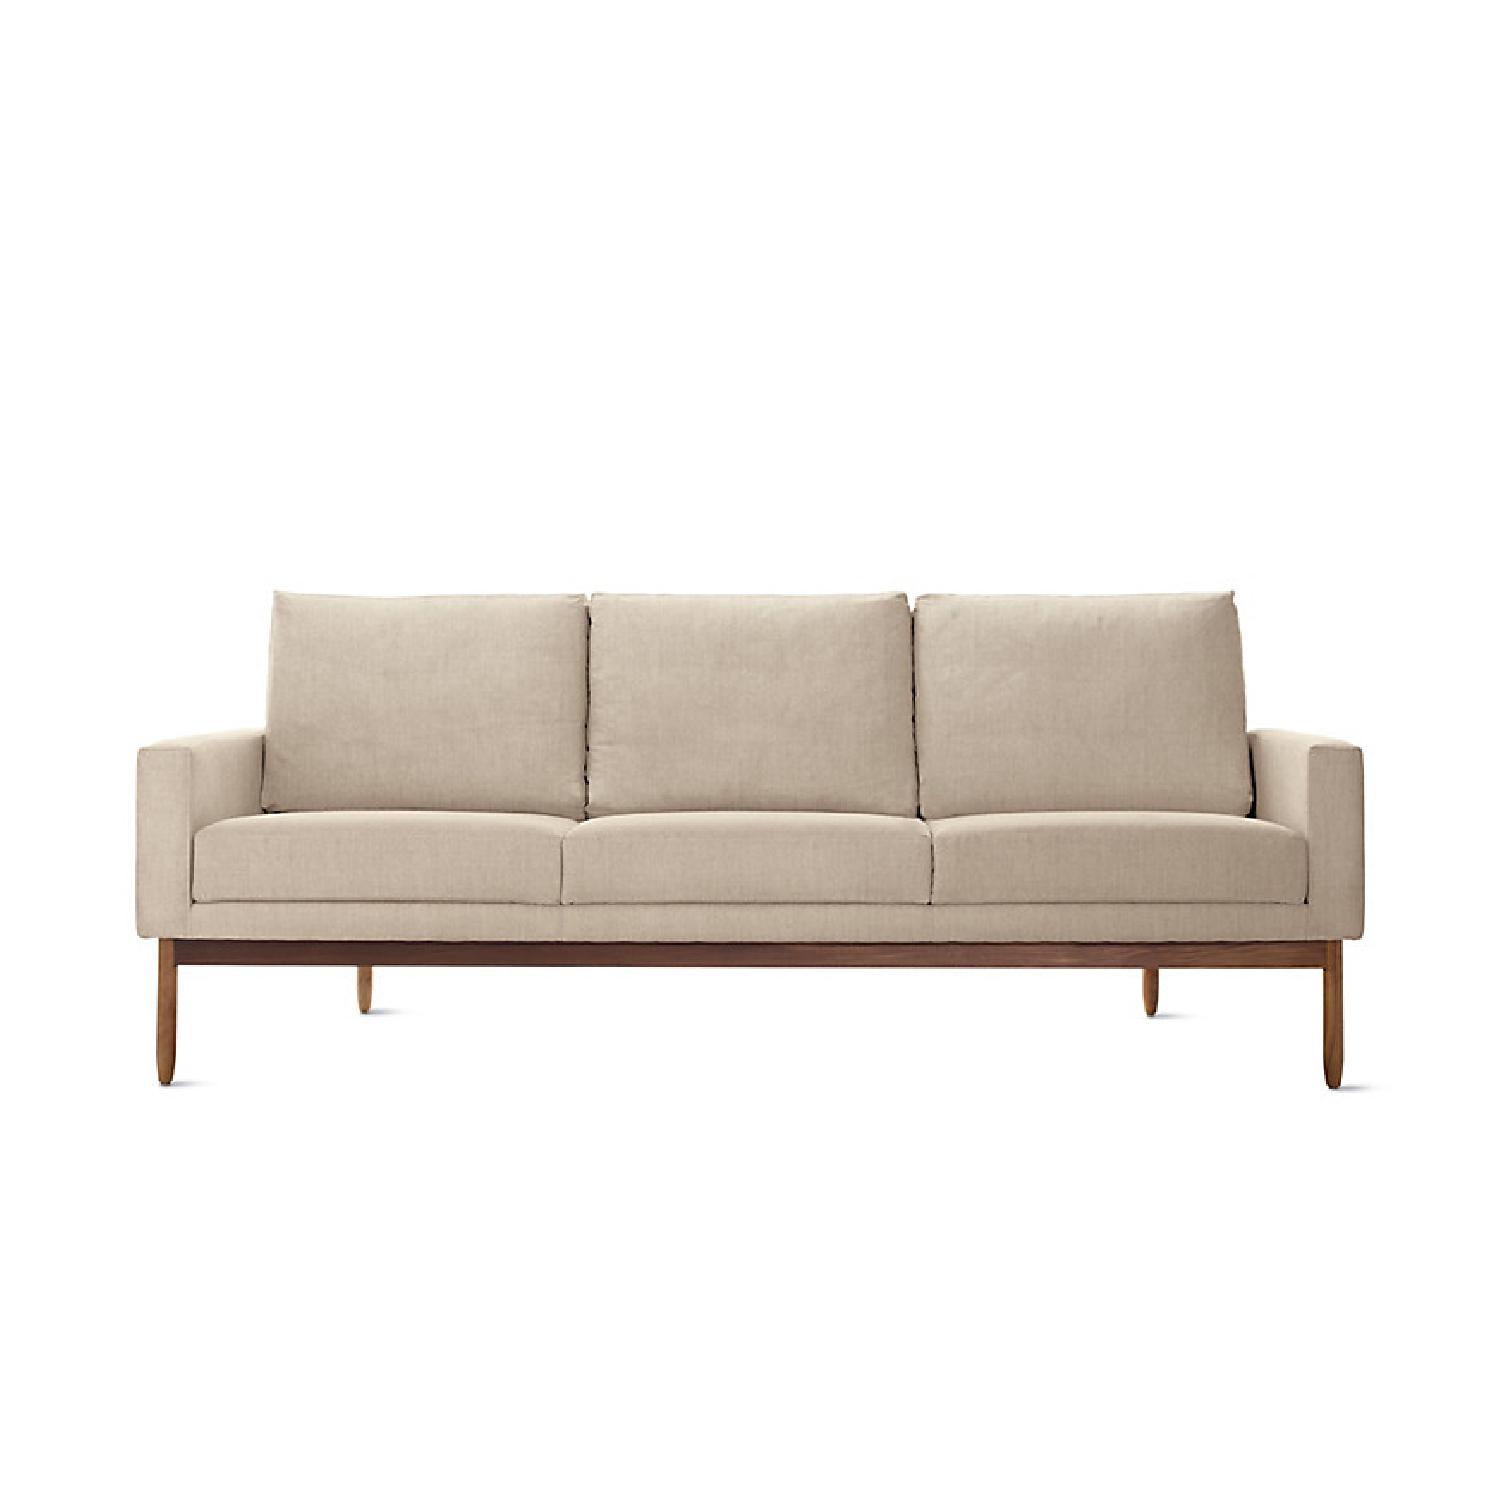 Design Within Reach Raleigh Sofa in Natural - image-0